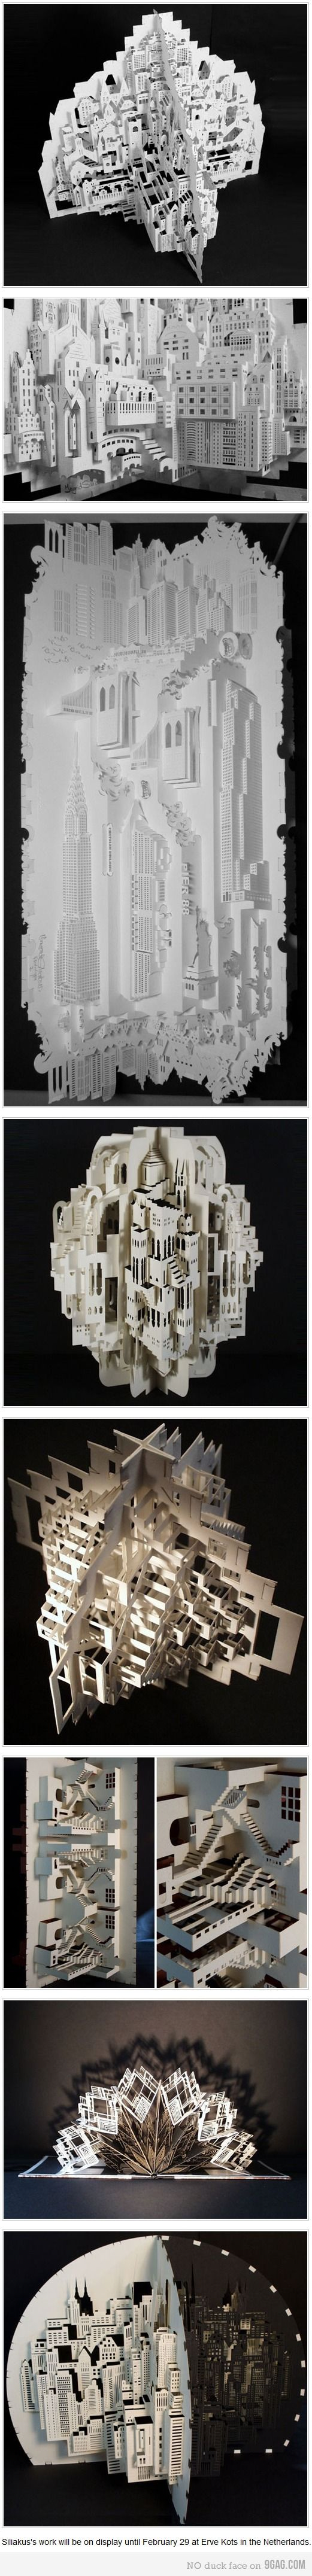 Cities Made Of Paper by Ingrid Siliakus